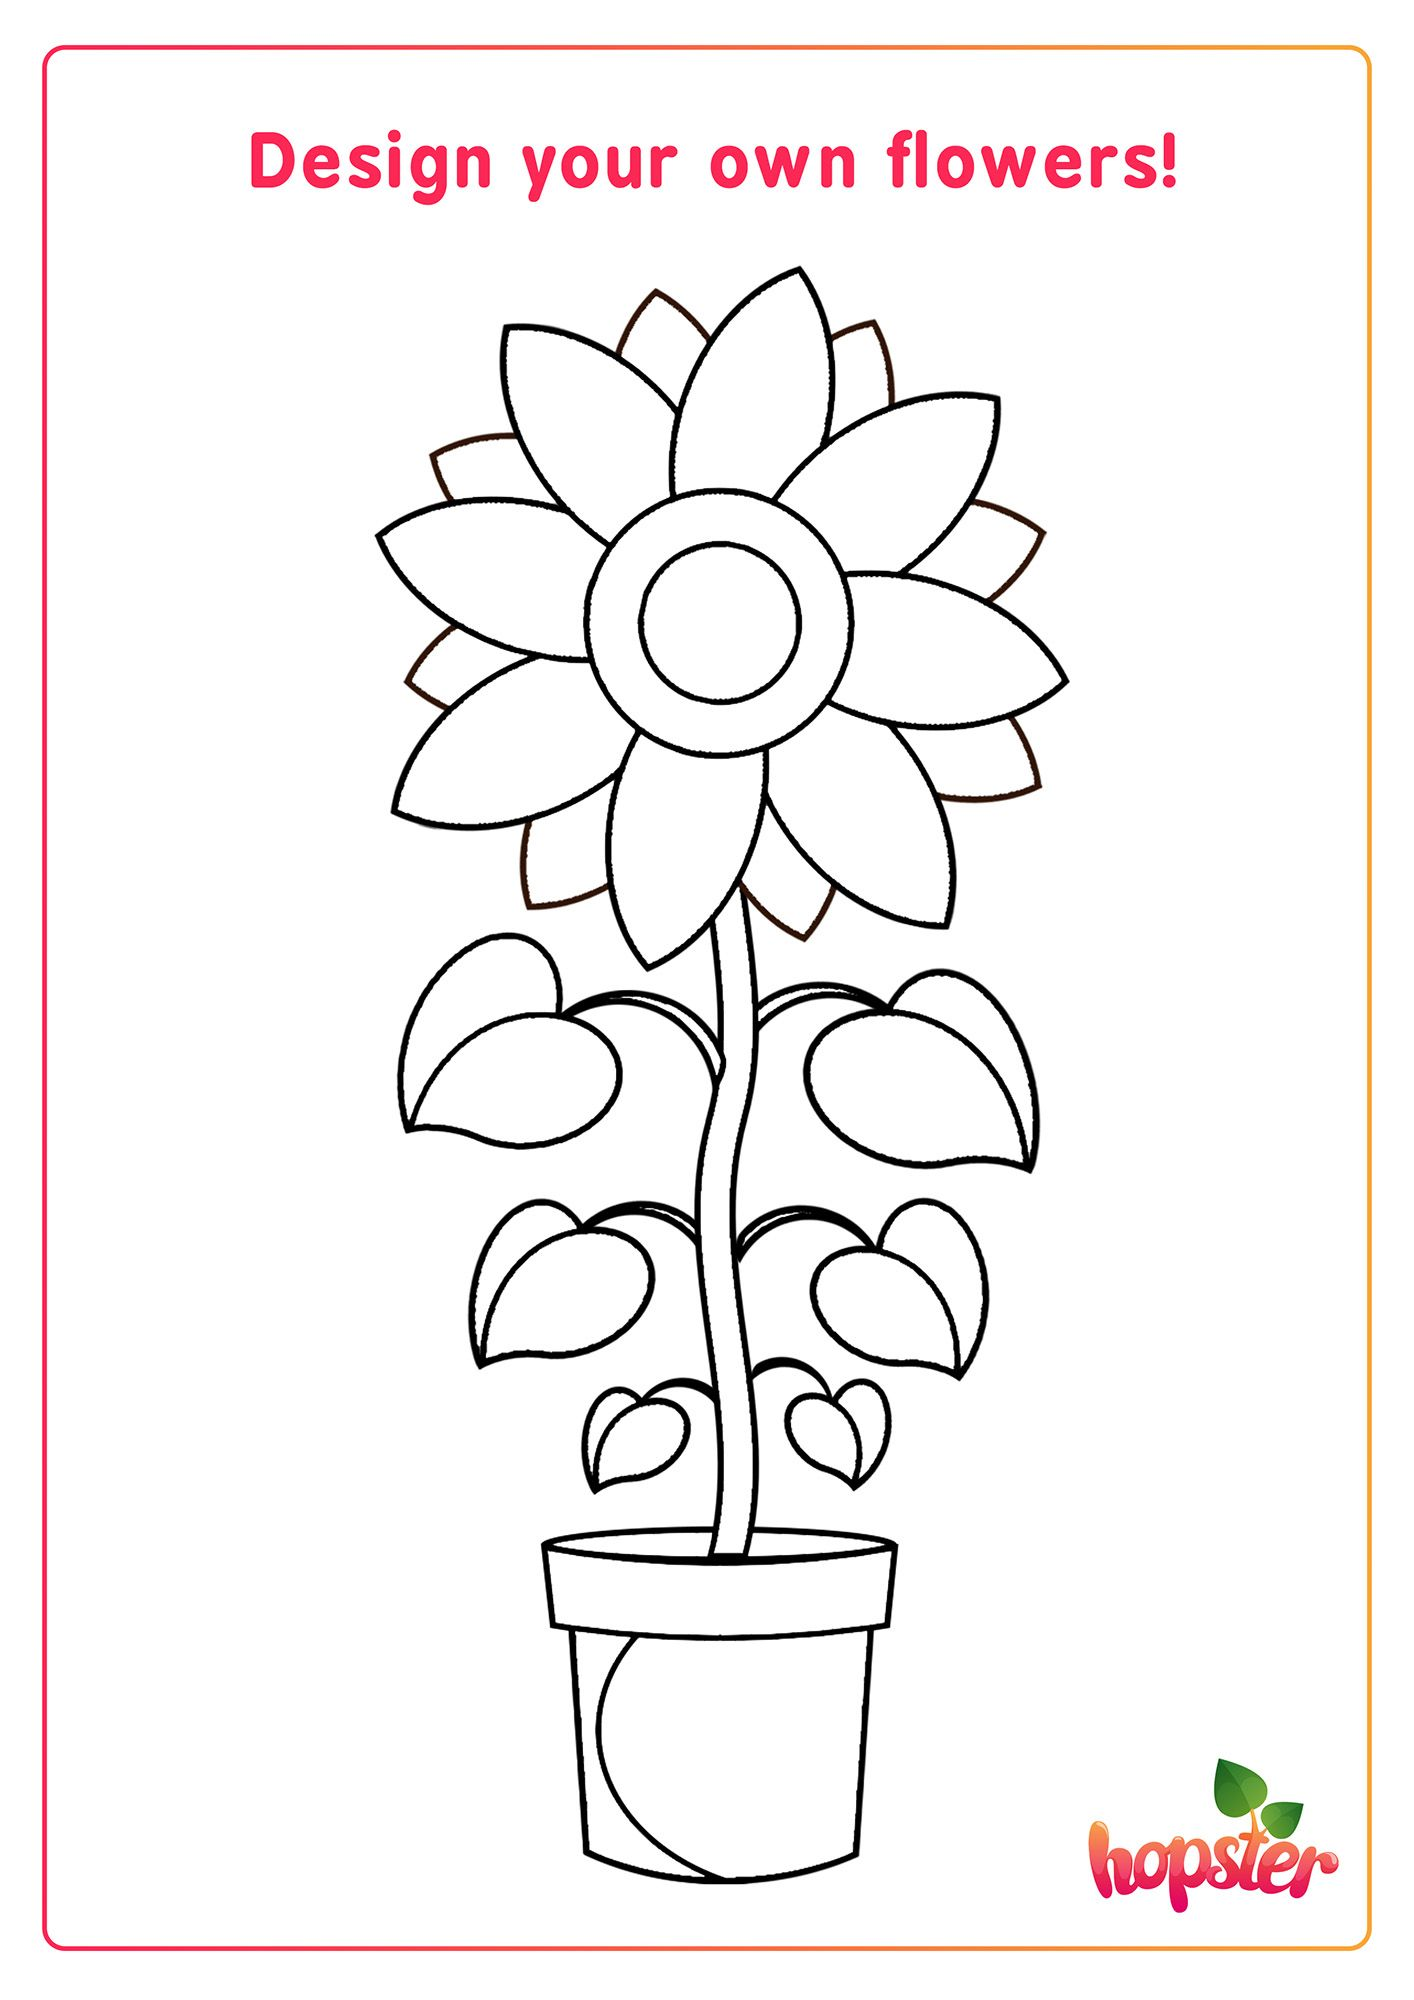 Colour In This Flower With Your 3 Favourite Colours Fun Printables For Kids Kids Learning Apps Activity Sheets [ 2000 x 1414 Pixel ]